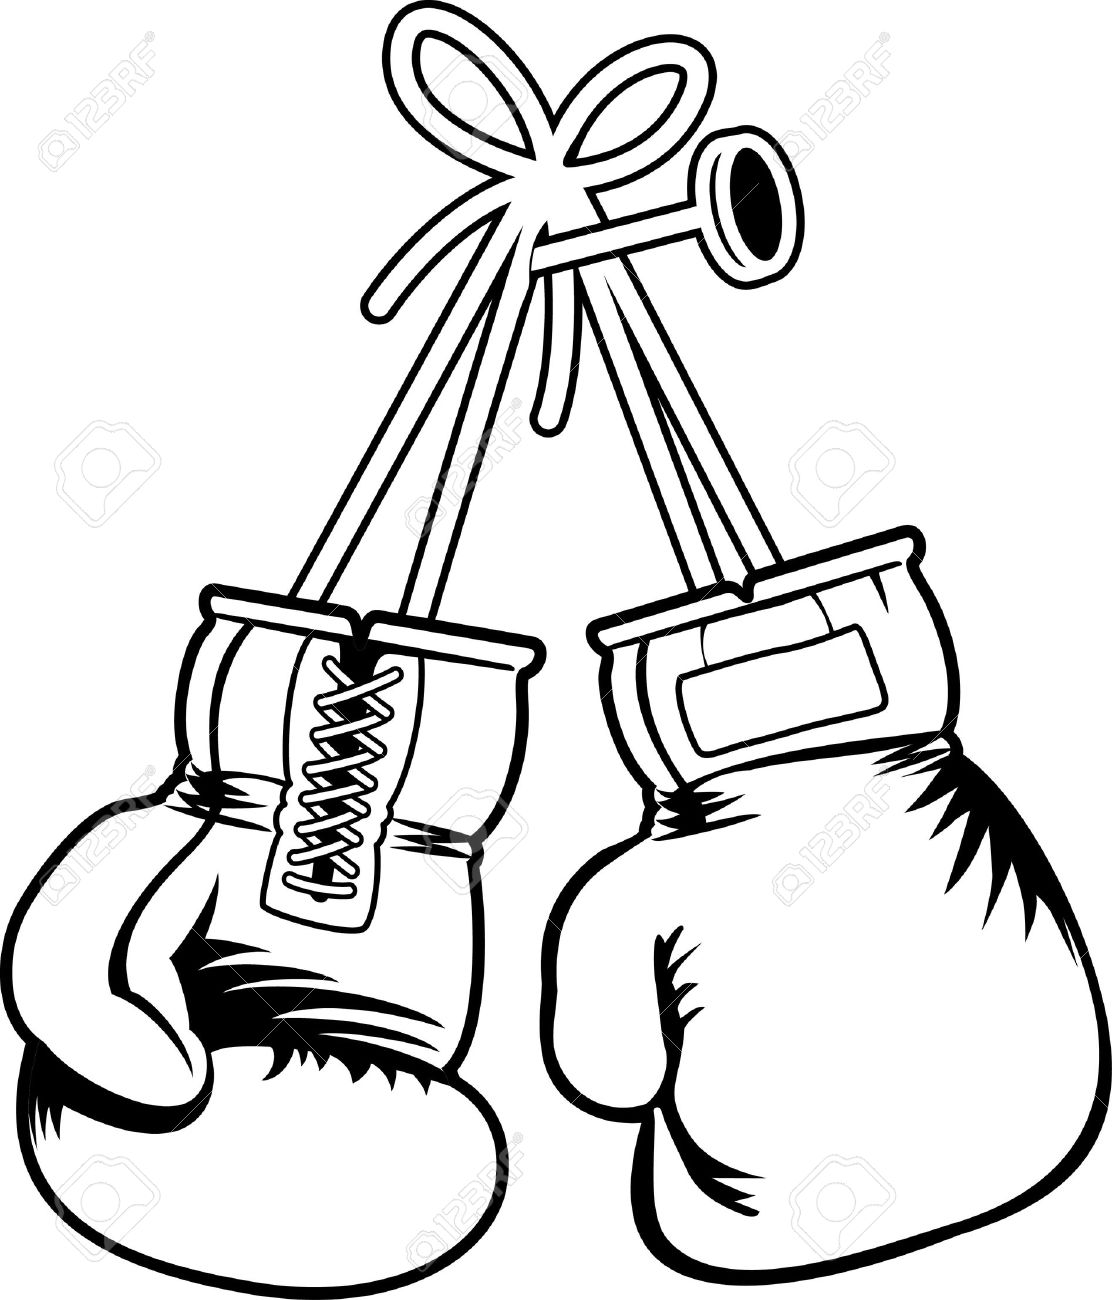 boxing gloves coloring pages sports boxing coloring pages printable kinderpagescom coloring boxing gloves pages